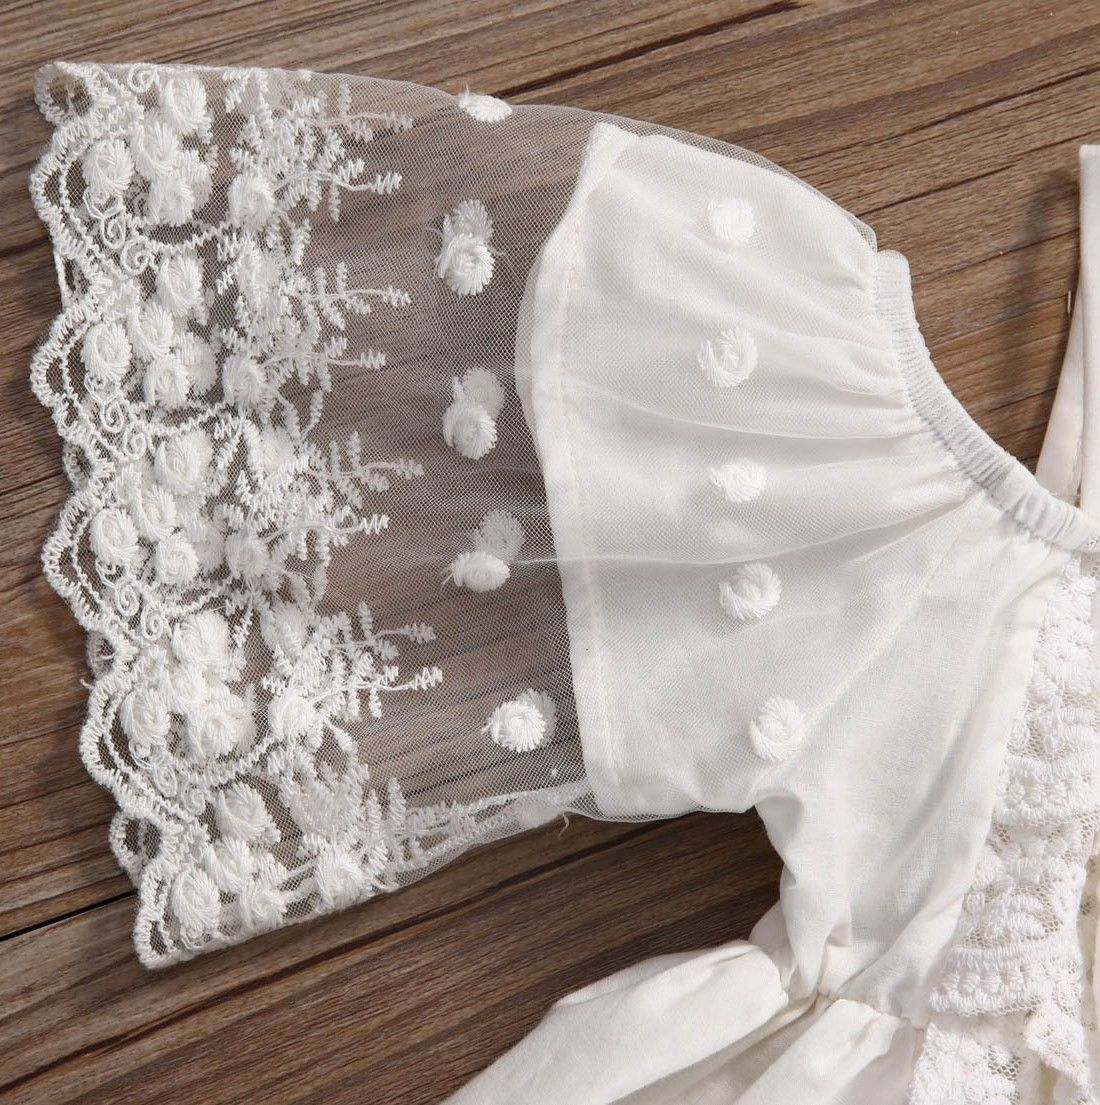 Lace-Girl-Clothing-Princess-Dress-Kid-Baby-Party-Wedding-Pageant-Formal-Mini-Cute-White-Dresses-Clothes-Baby-Girls-4